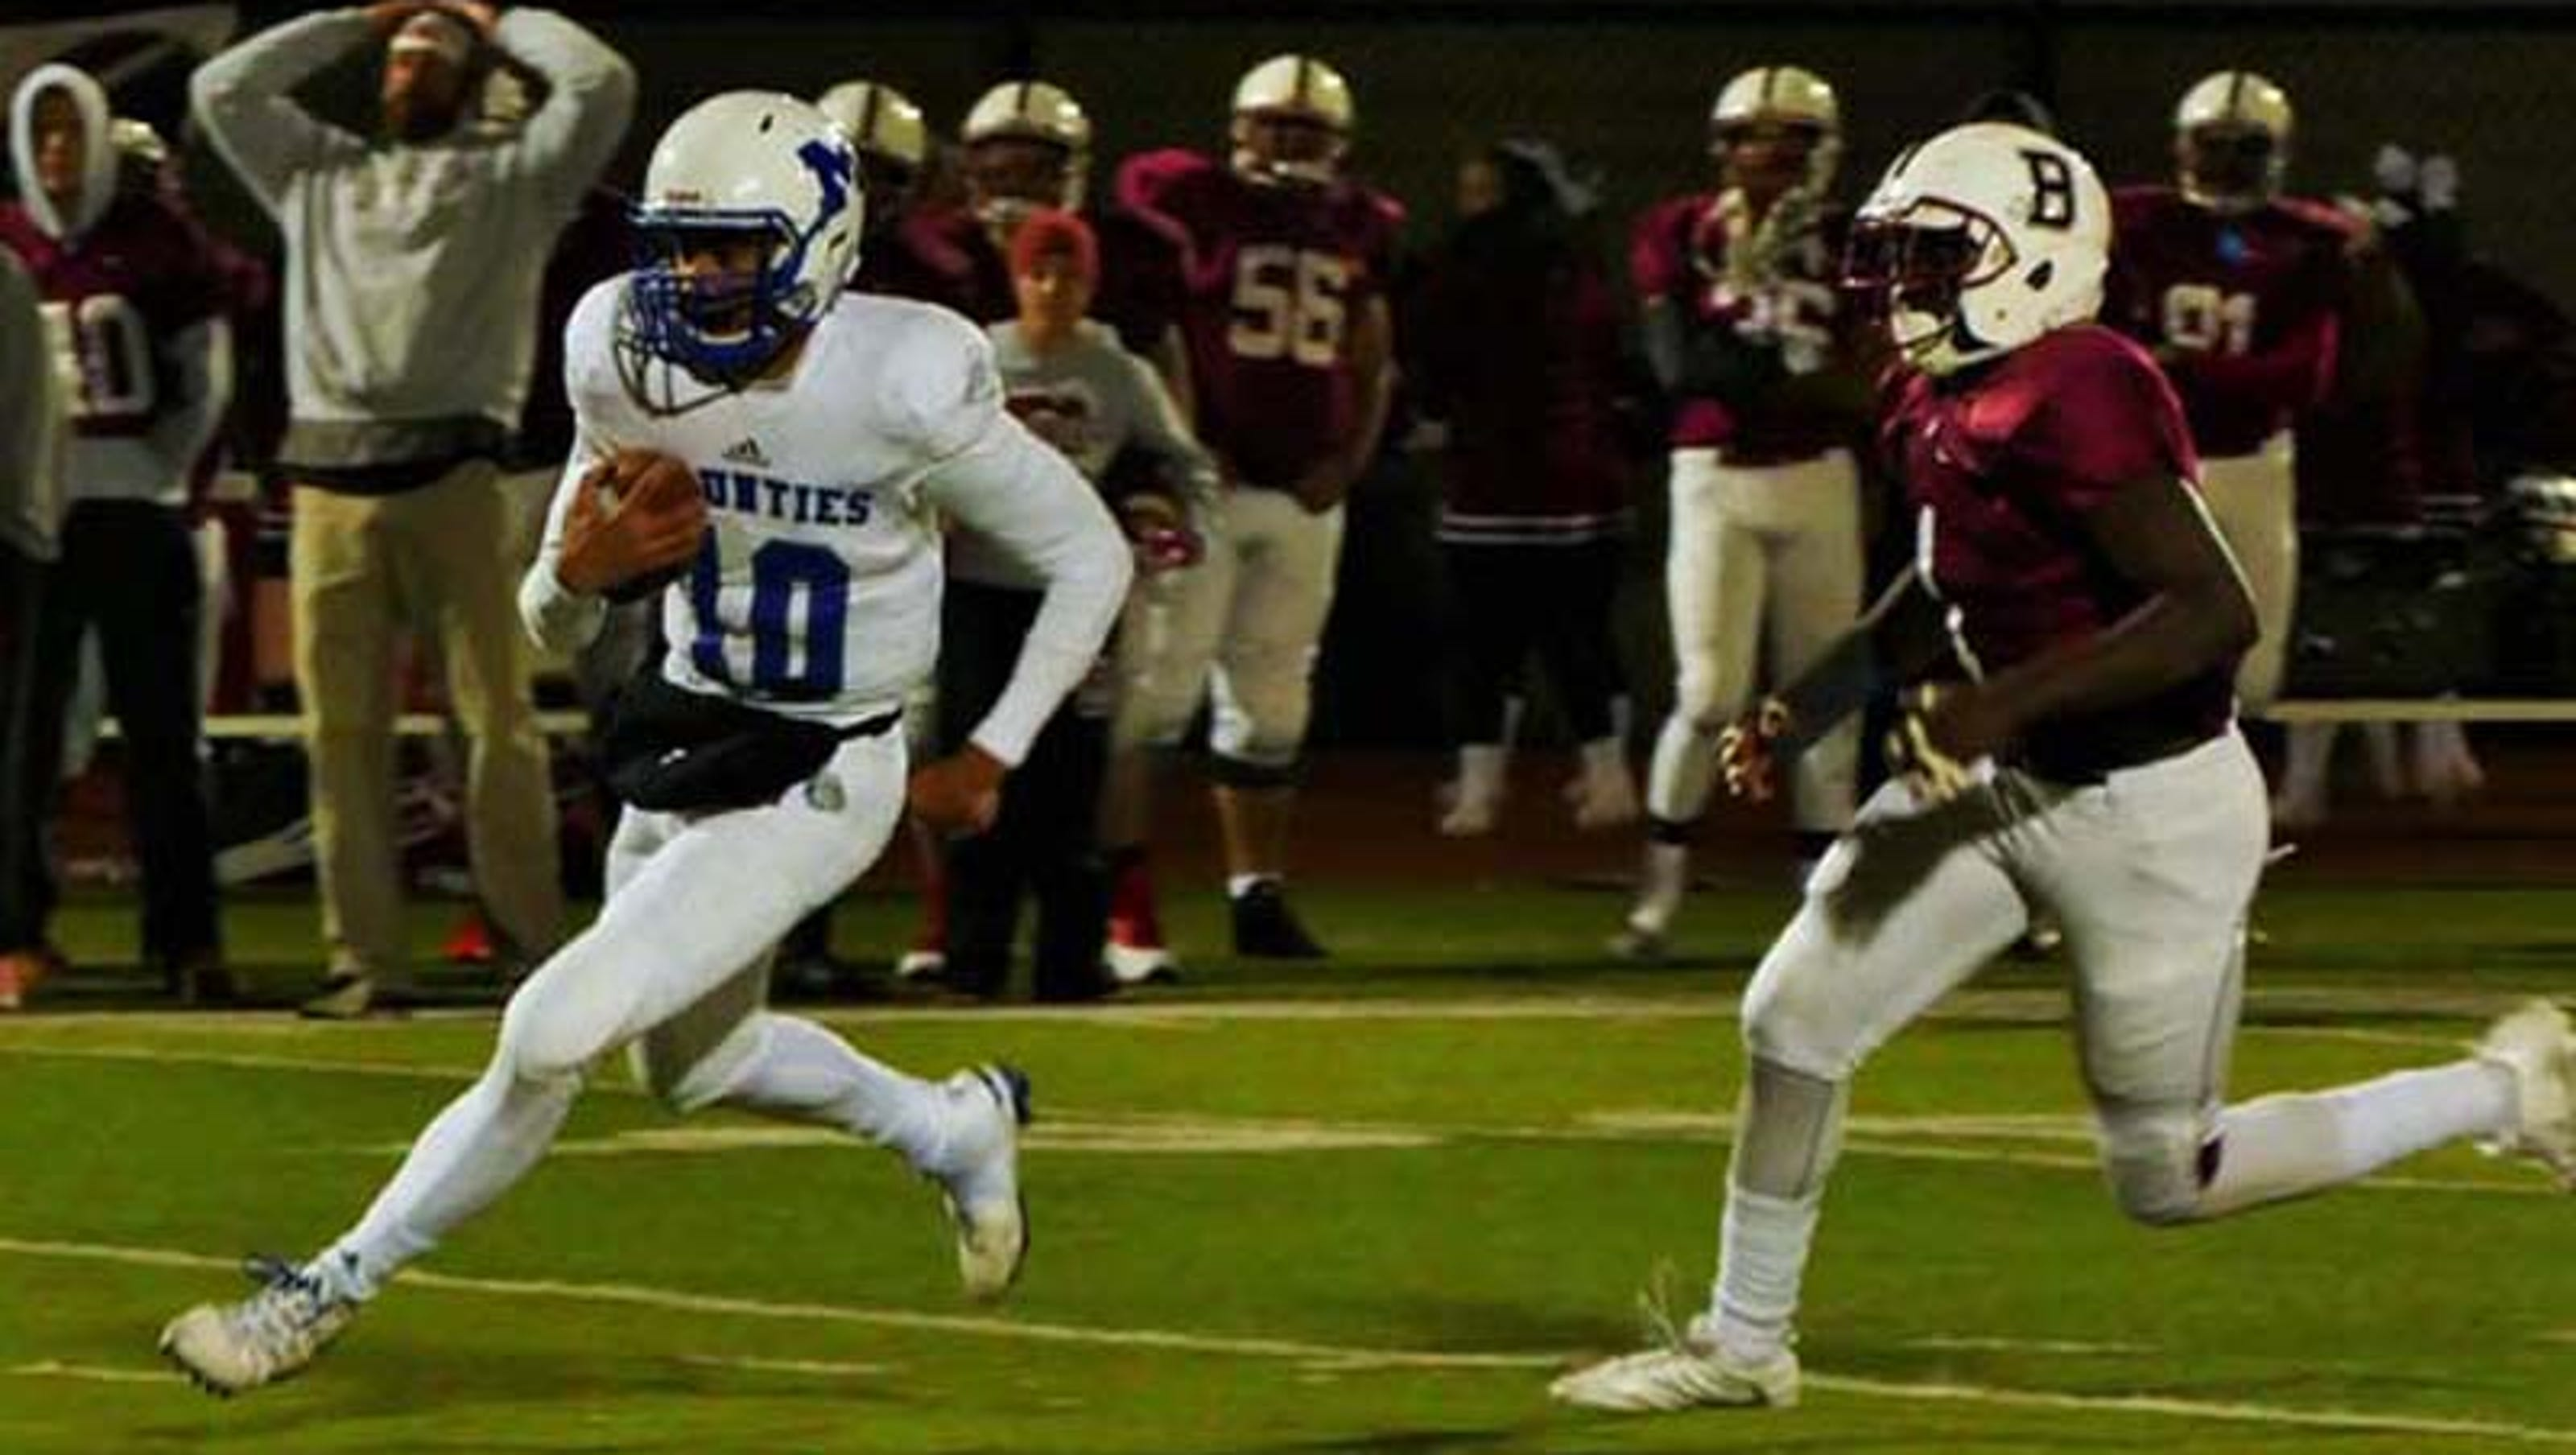 Montclair Quarterback Earle Verbally Commits To Bucknell